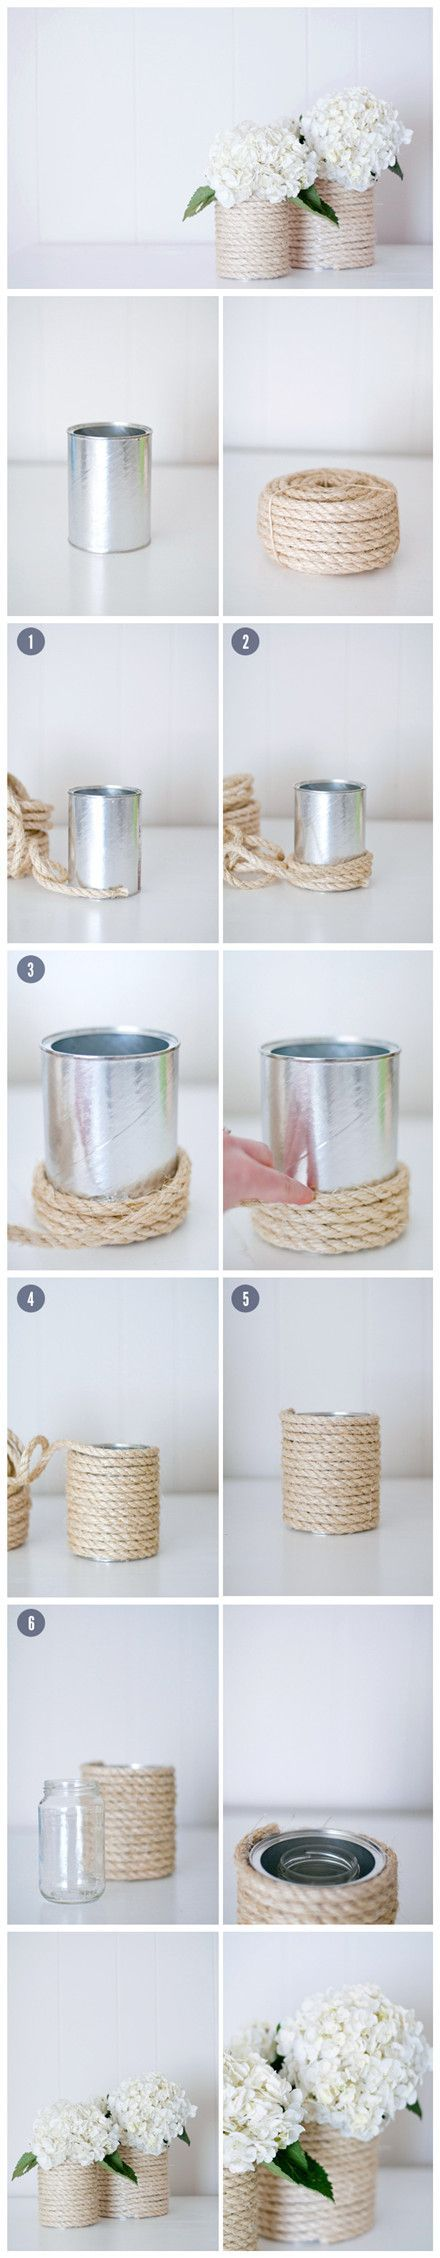 15 Incredible DIY